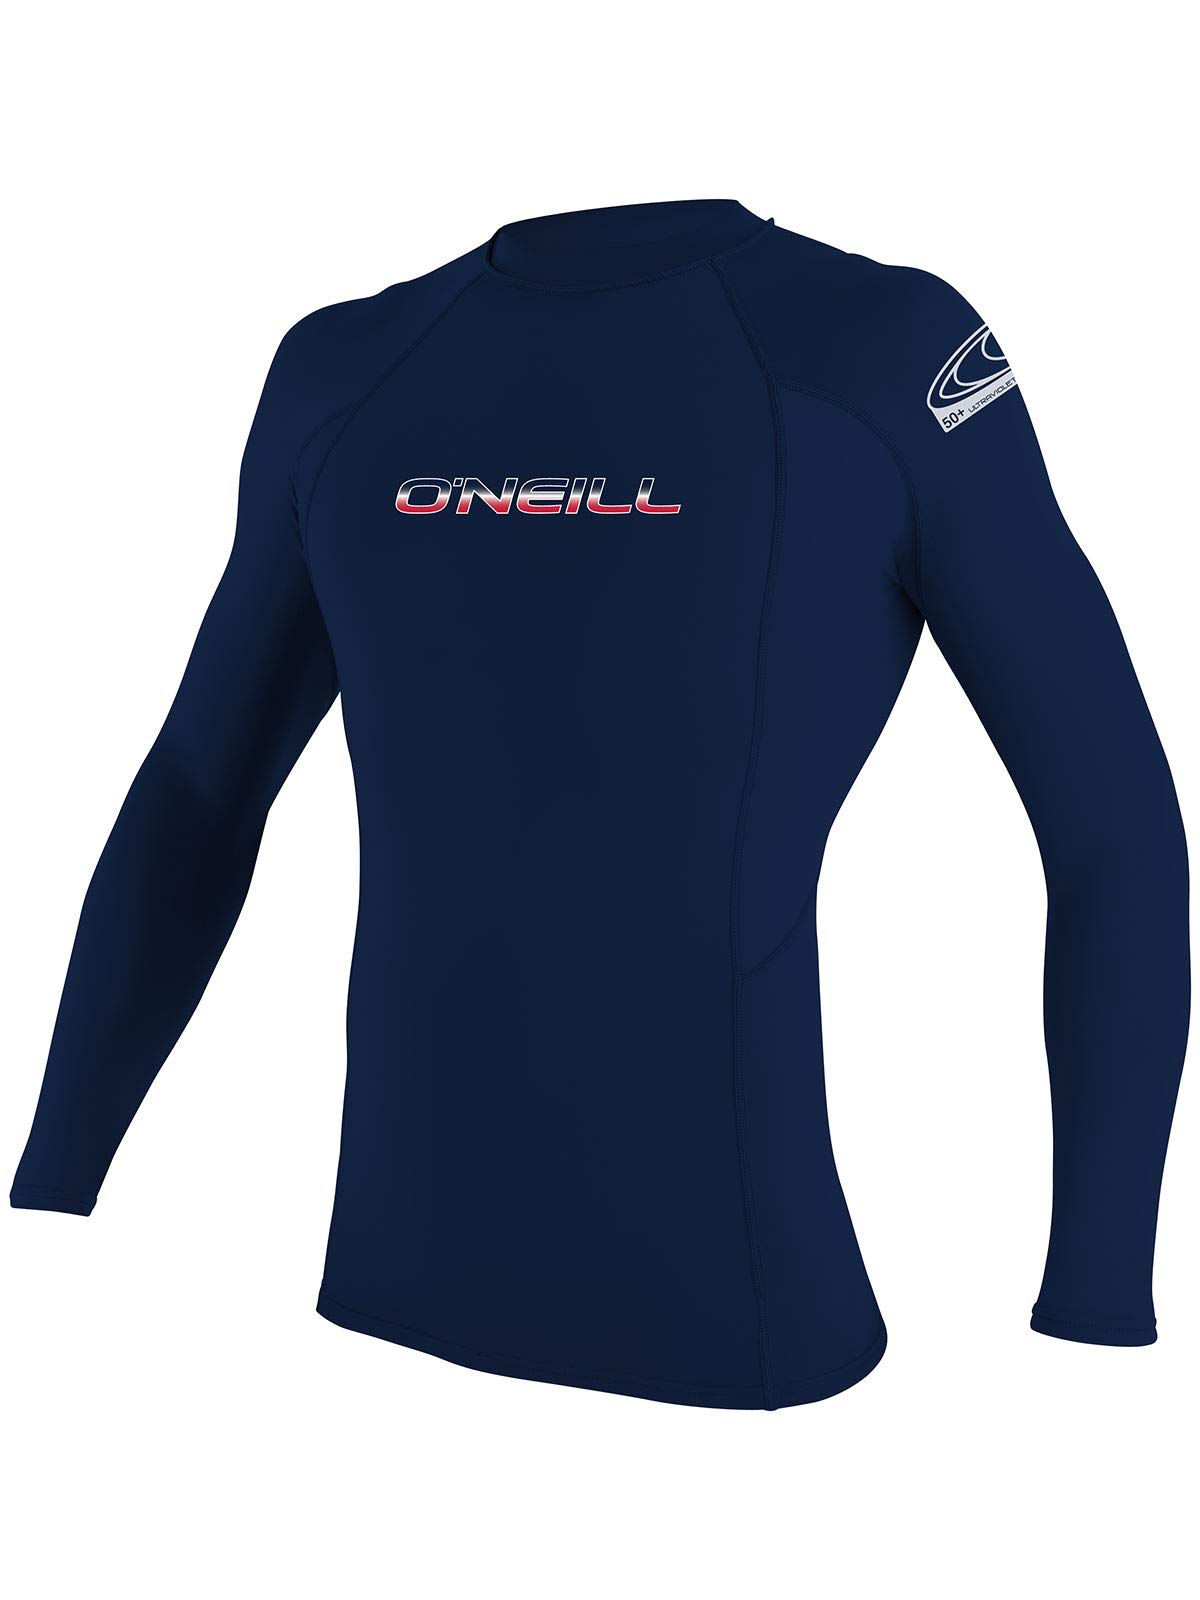 O'Neill Men's Basic Skins Long Sleeve Rashguard 4XL-Tall Navy (3342IB) by O'Neill Wetsuits